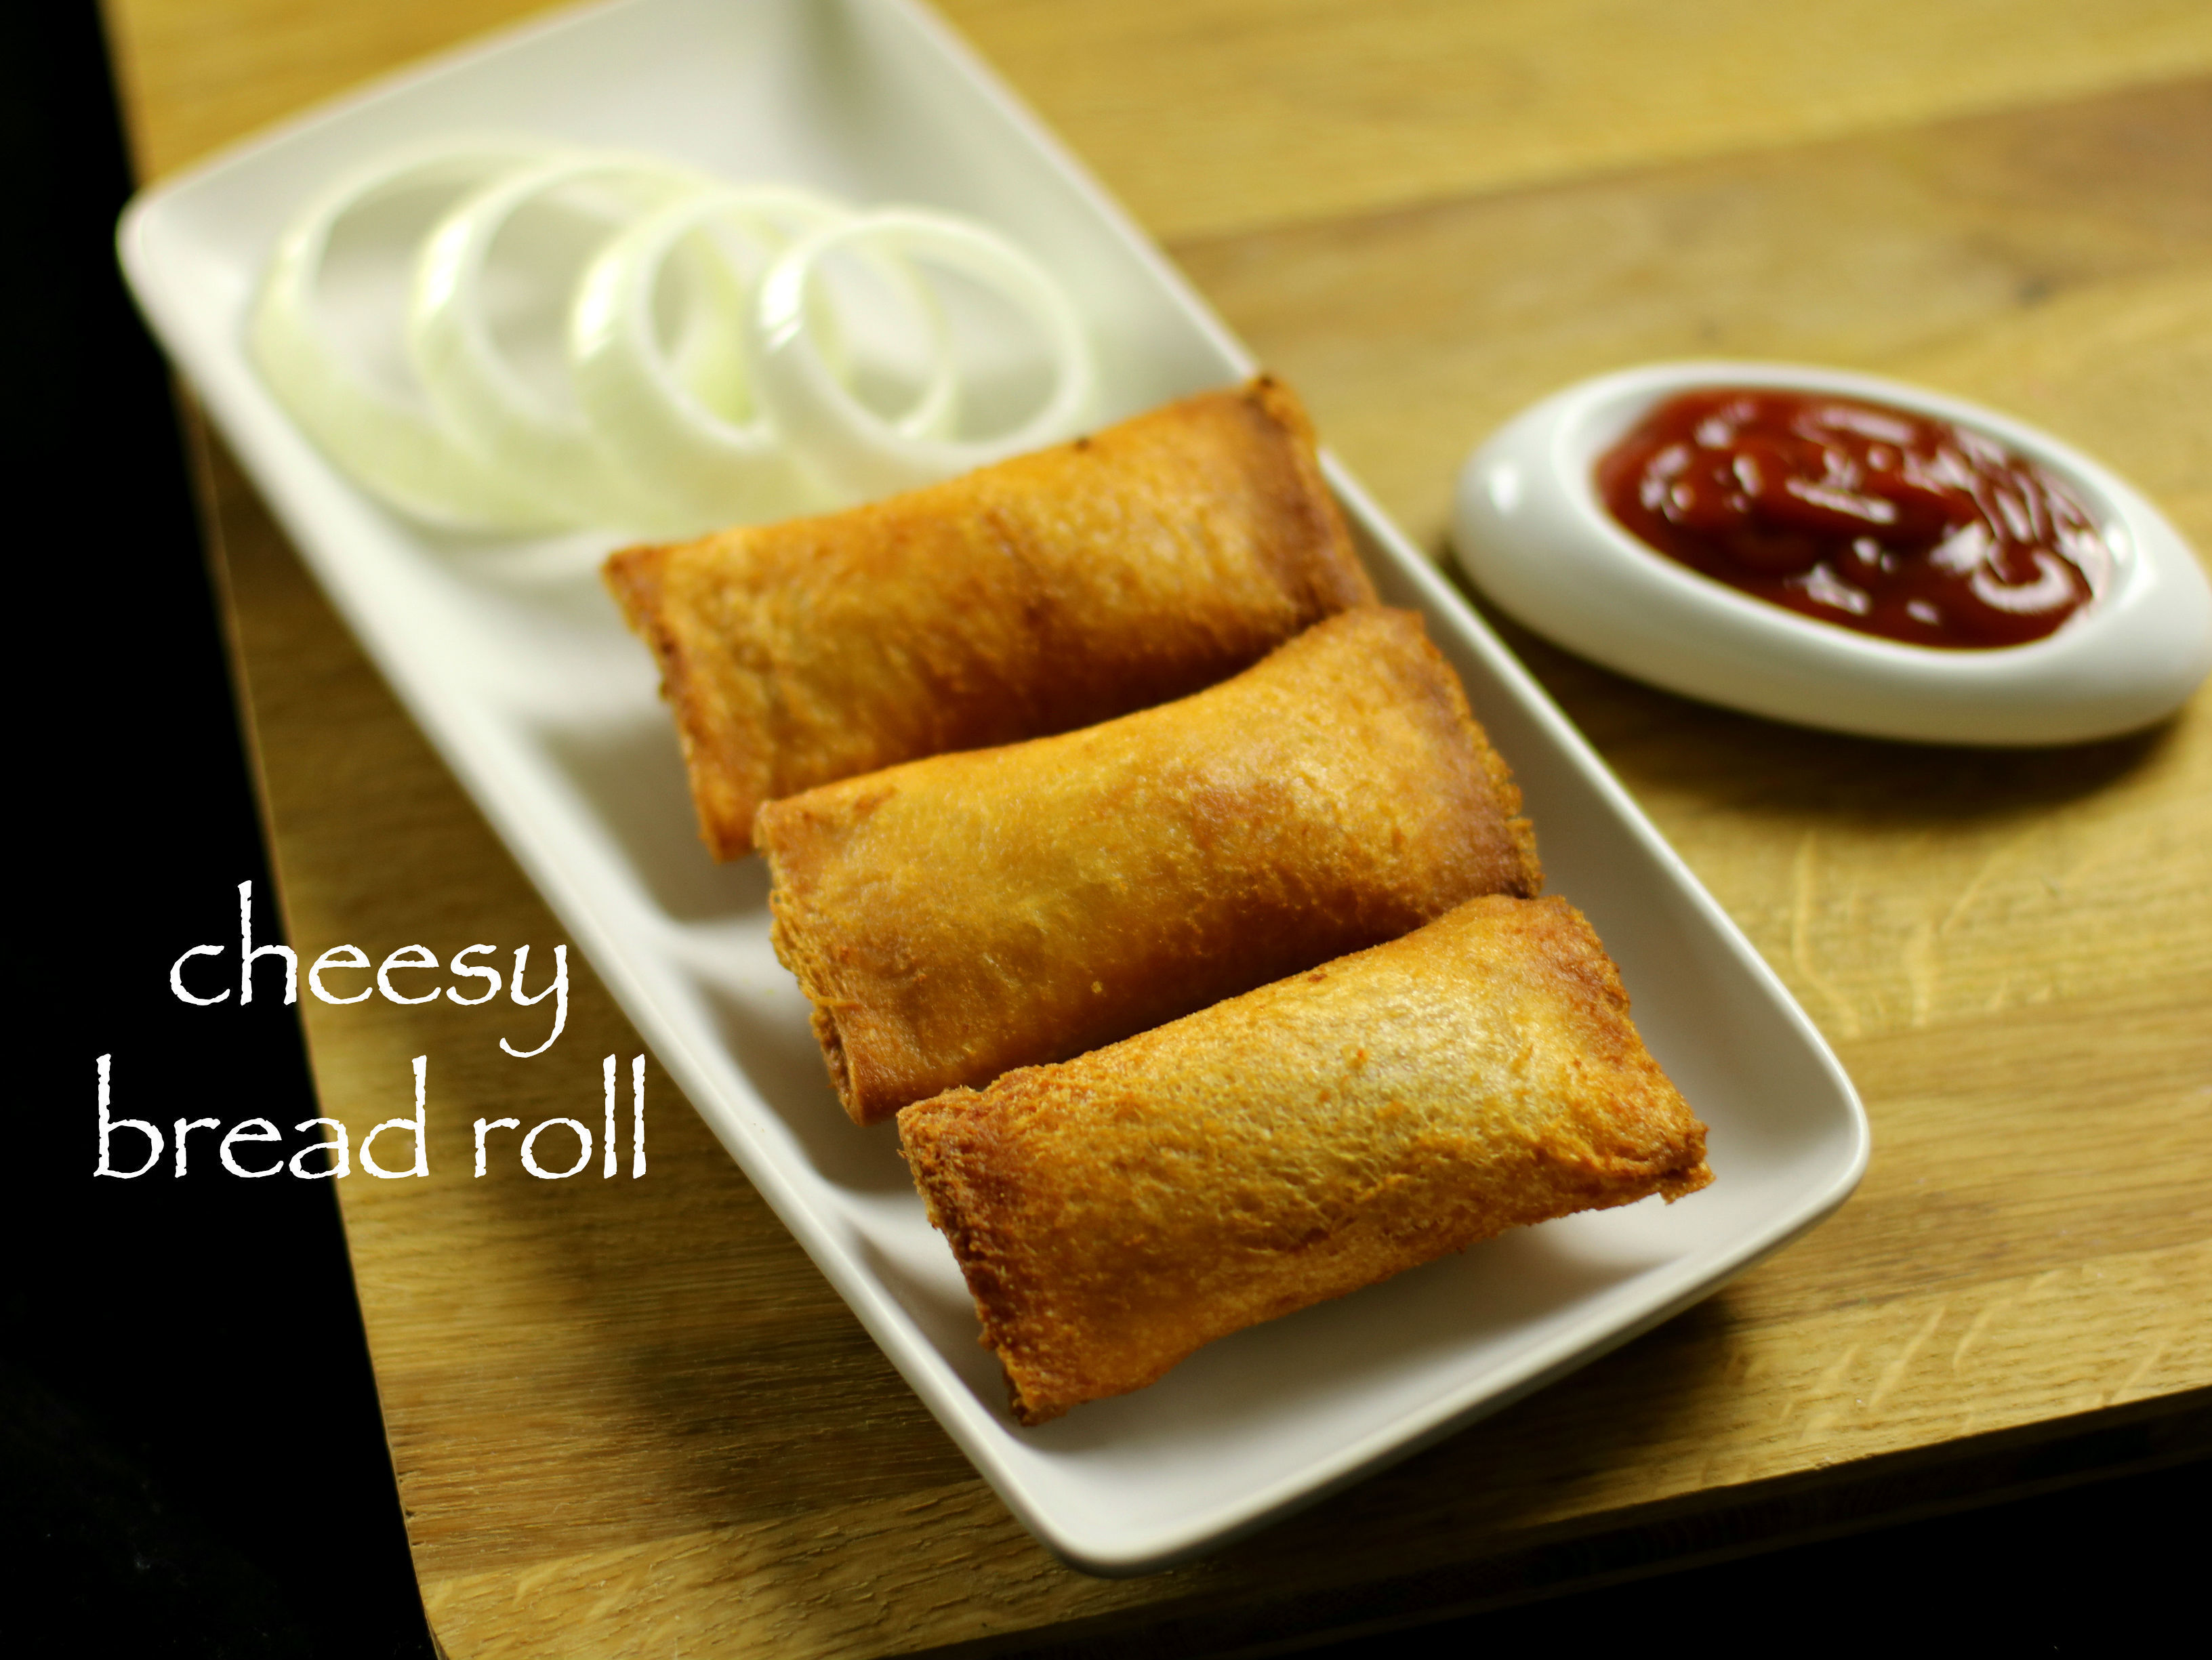 cheesy bread roll recipe | veg stuffed bread roll recipe